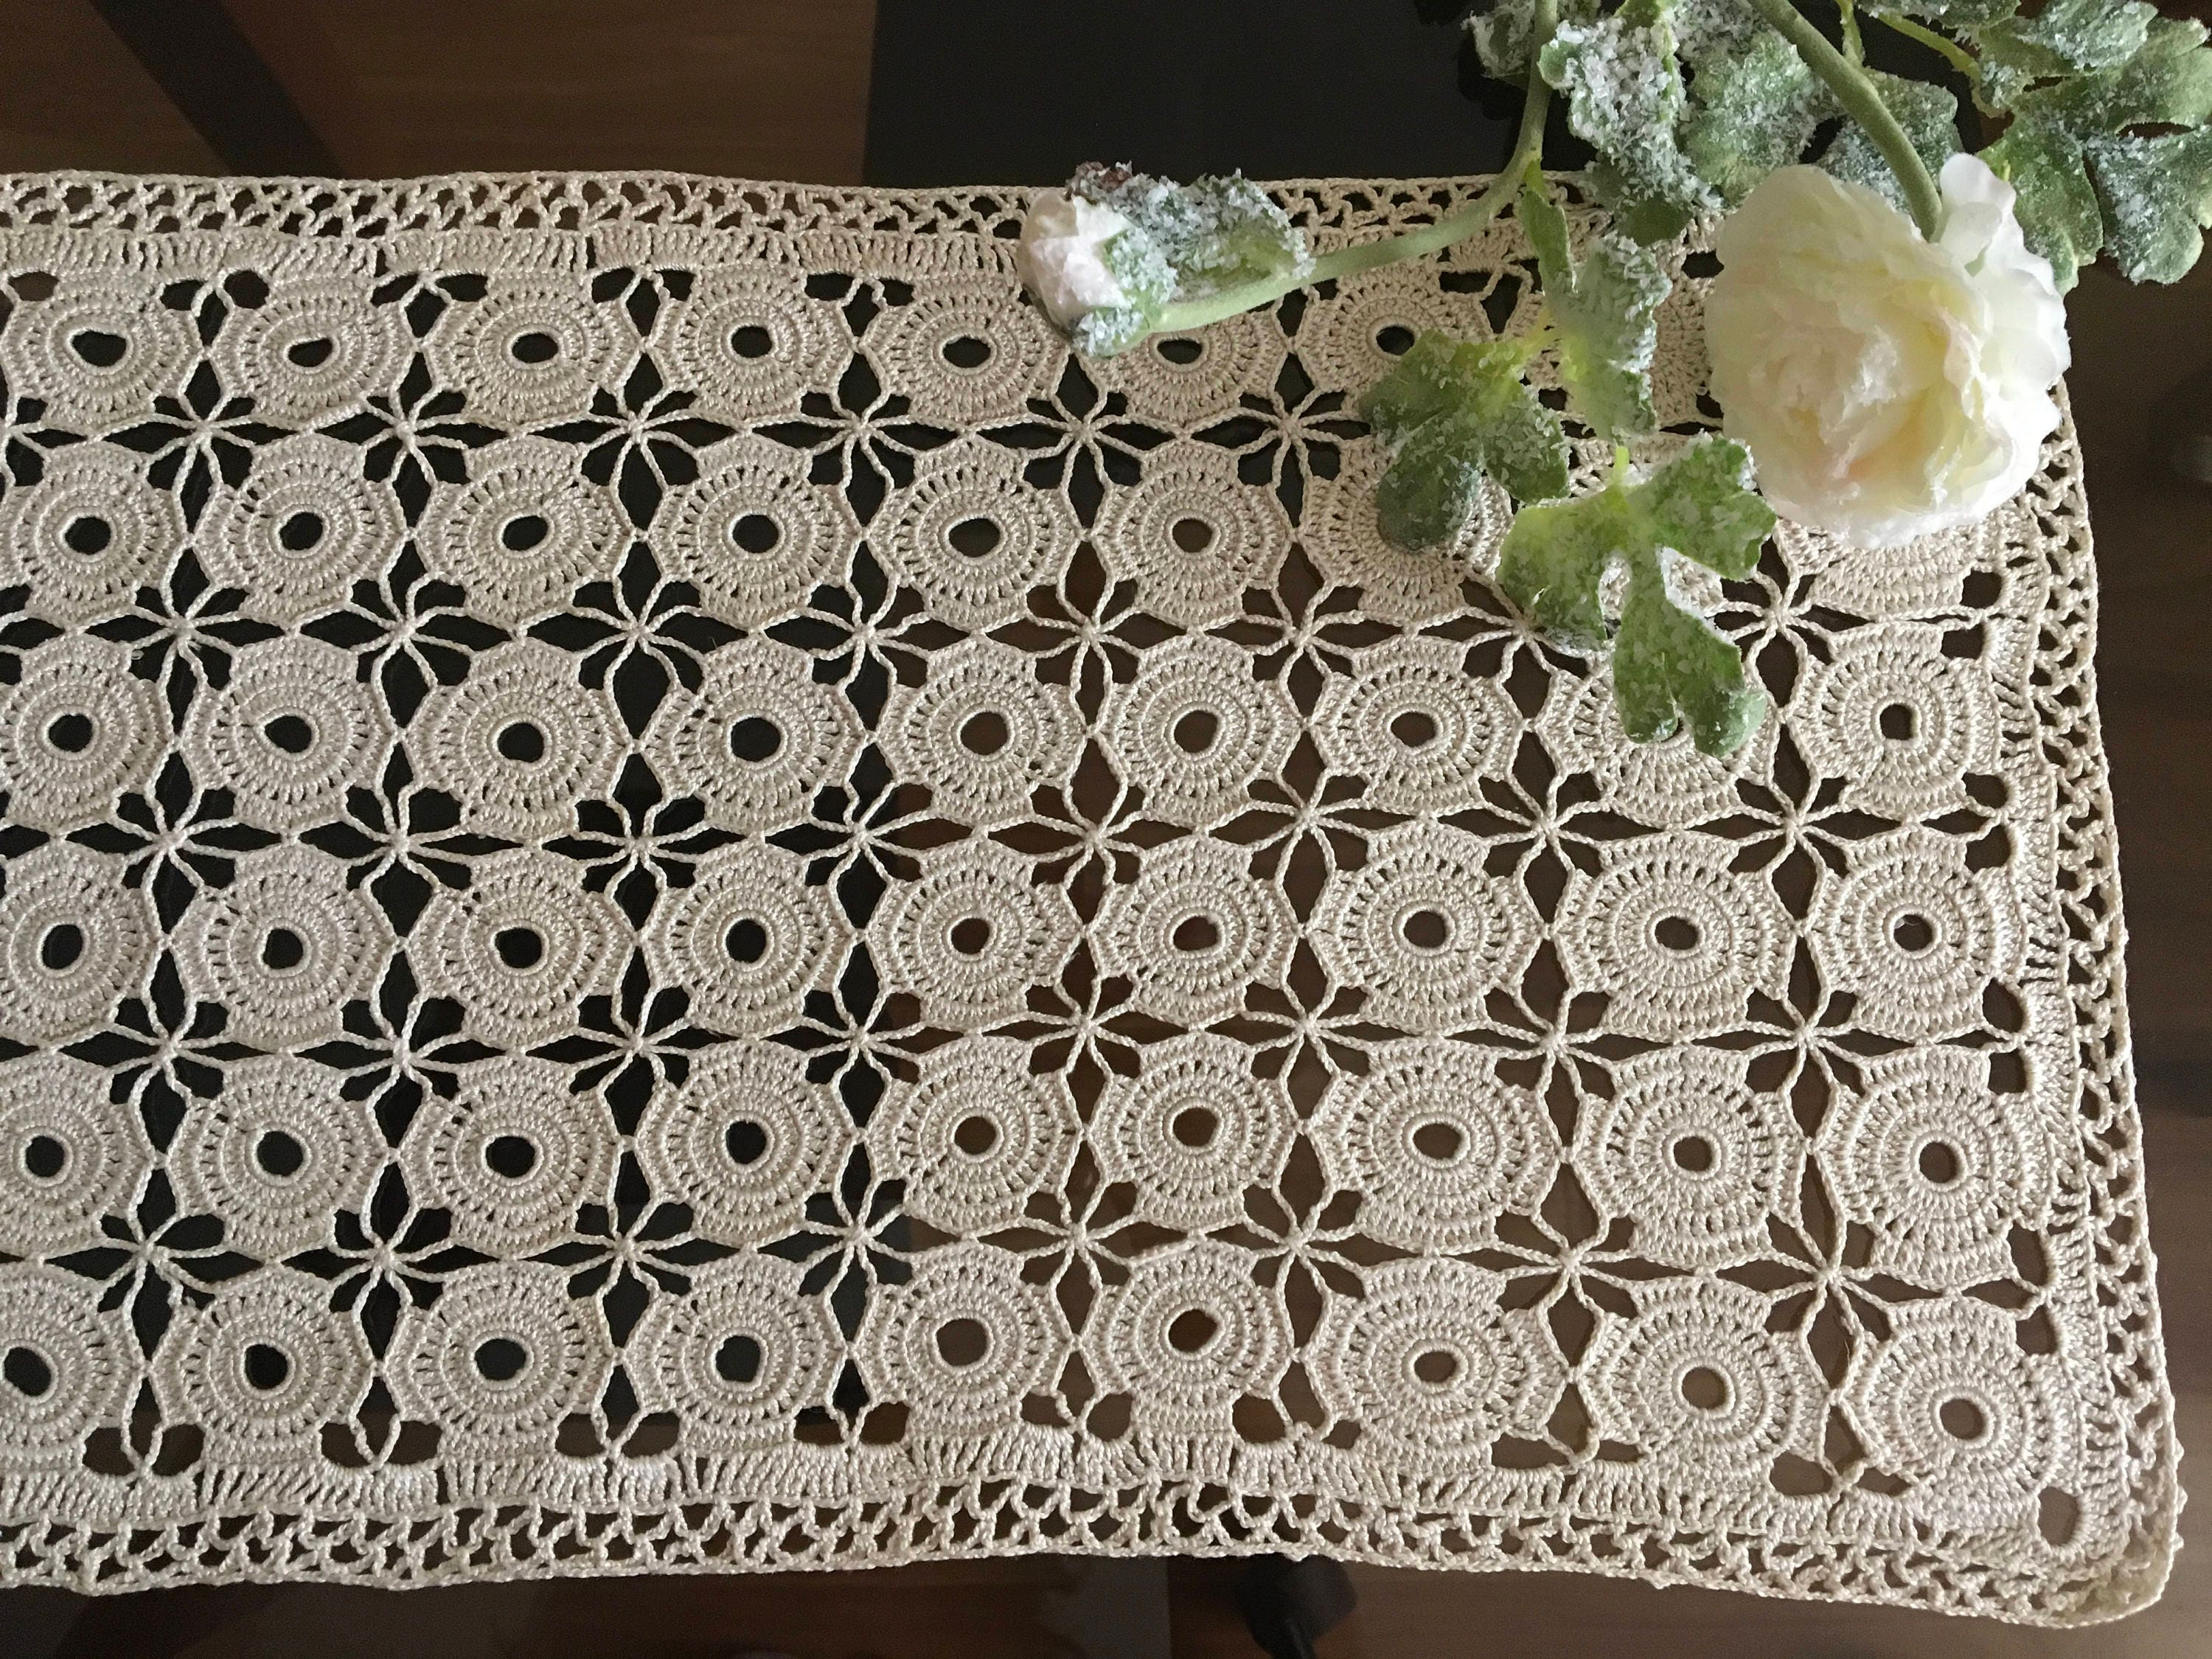 Large Doily Crochet Vintage Wedding Rectangle Handmade Tablecloth